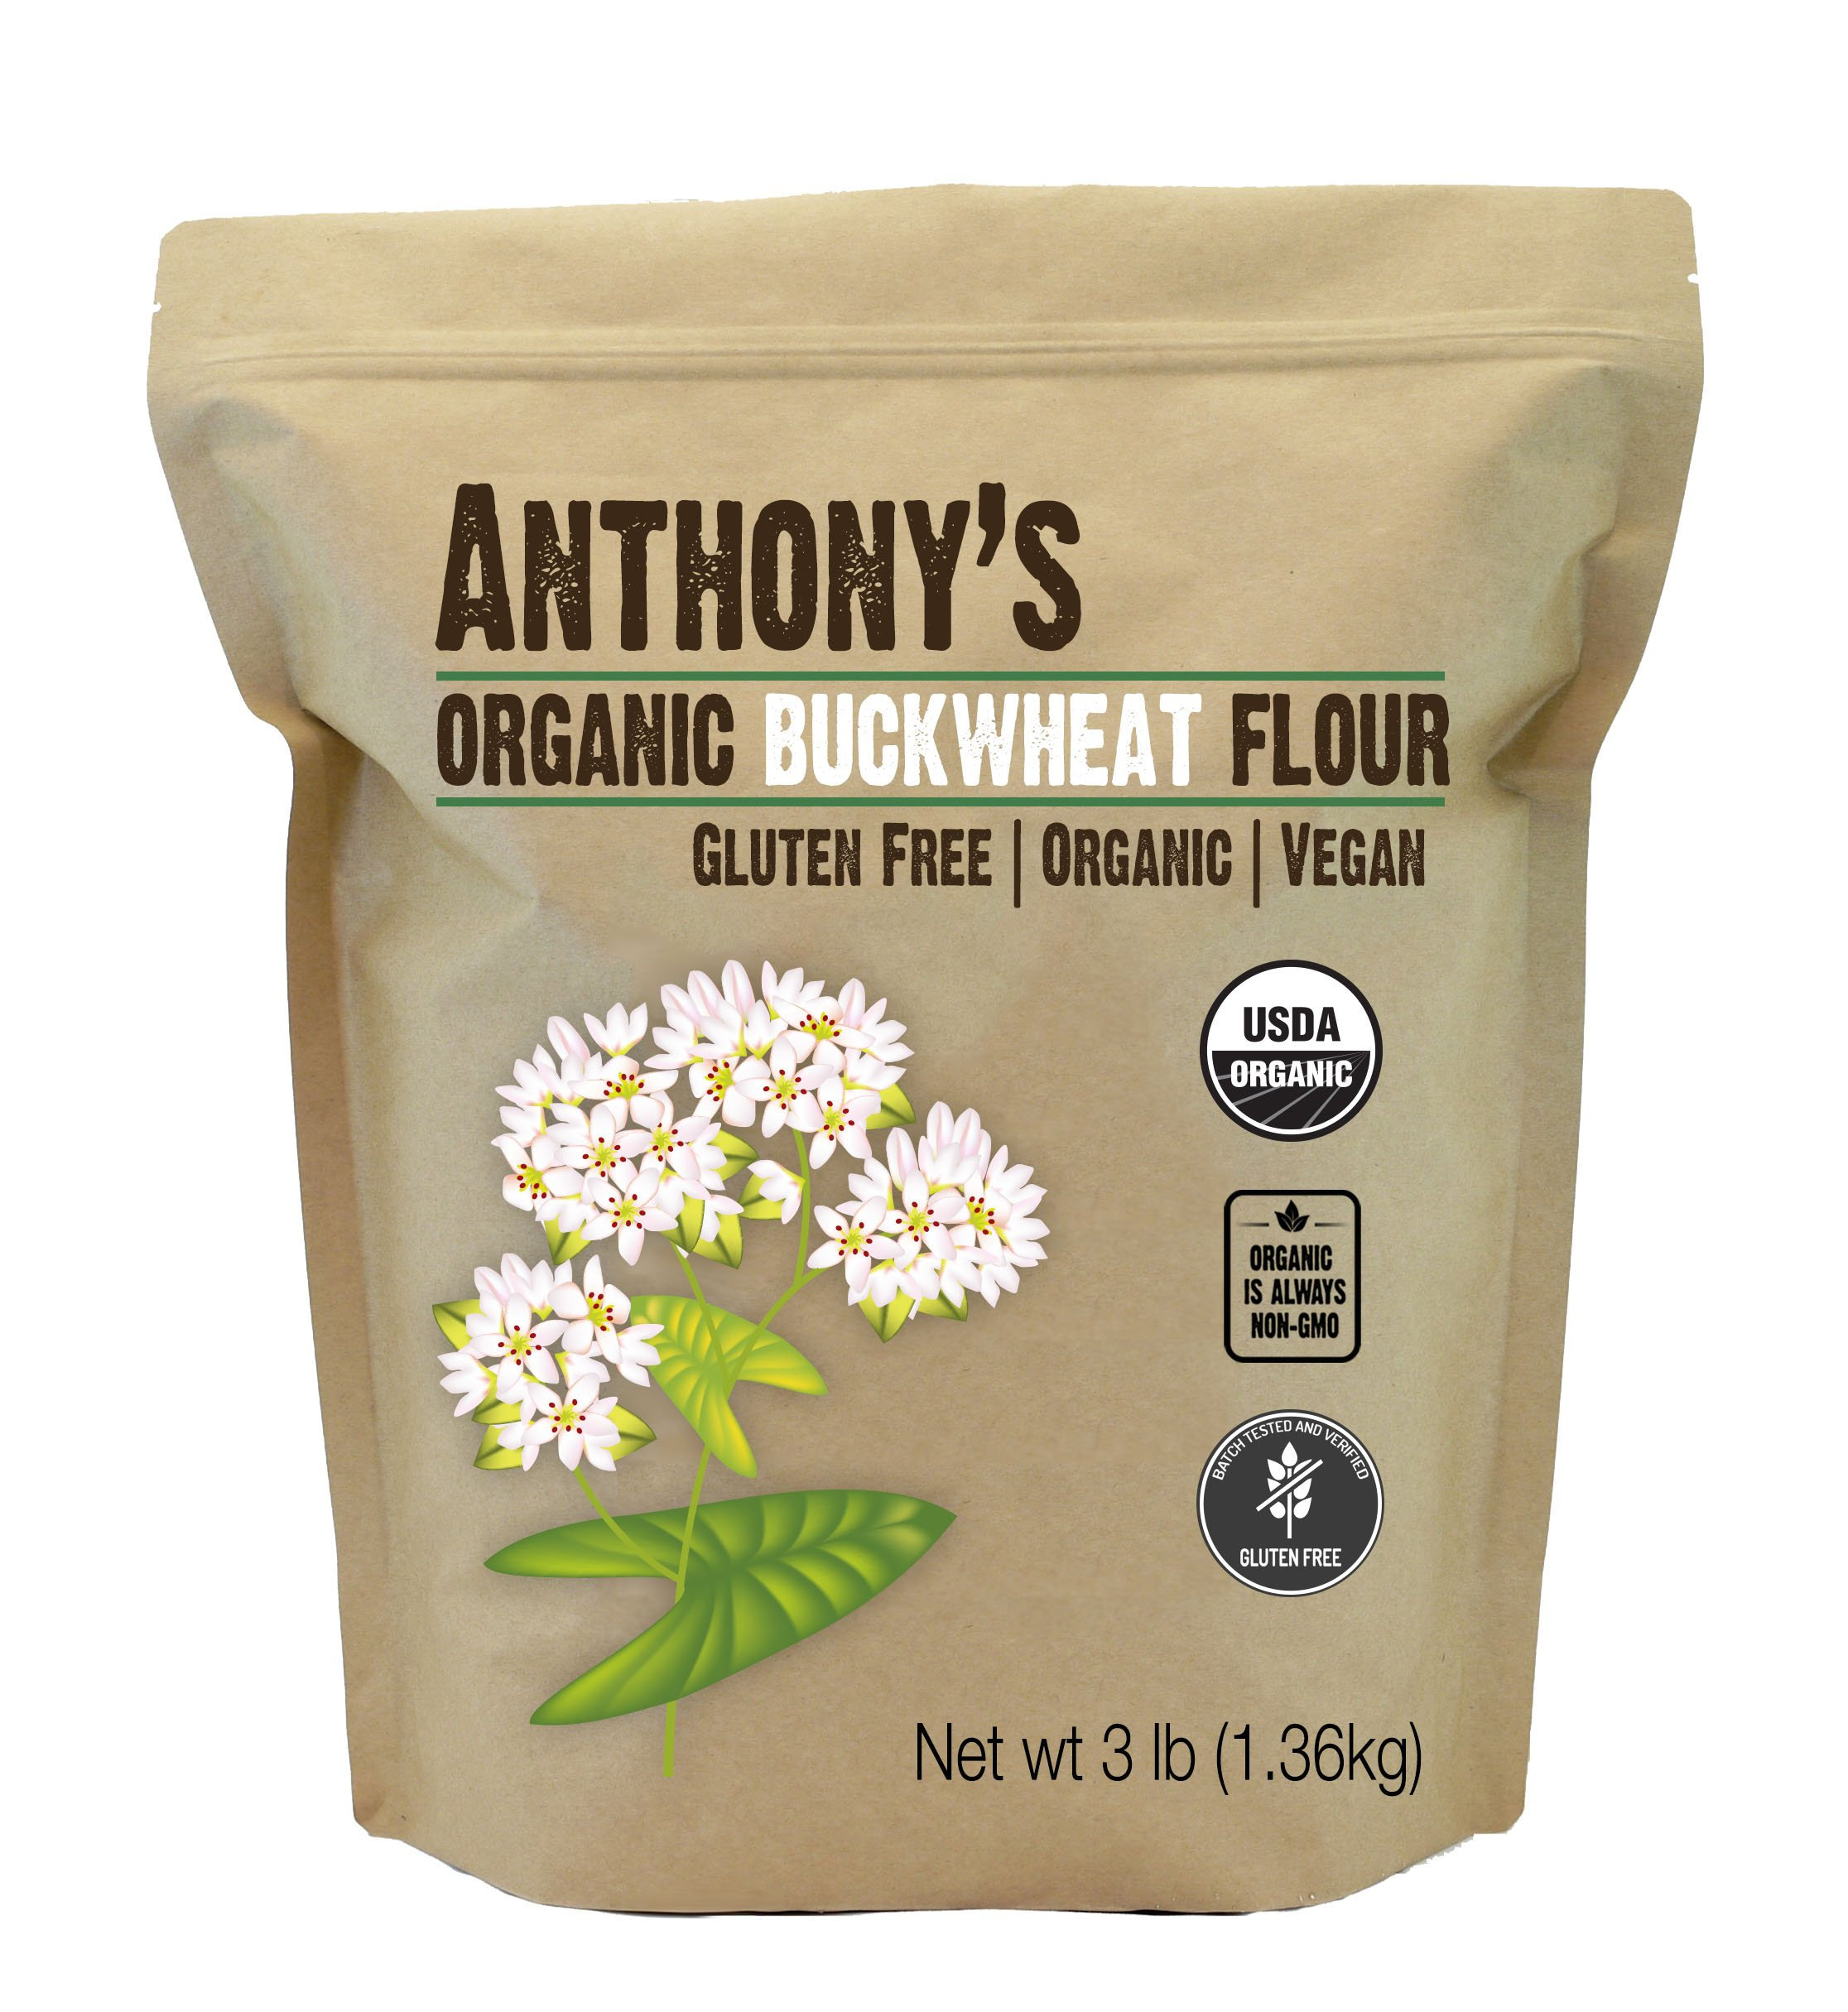 Anthony's Organic Buckwheat Flour (3lb), Grown in USA, Gluten Free, Vegan